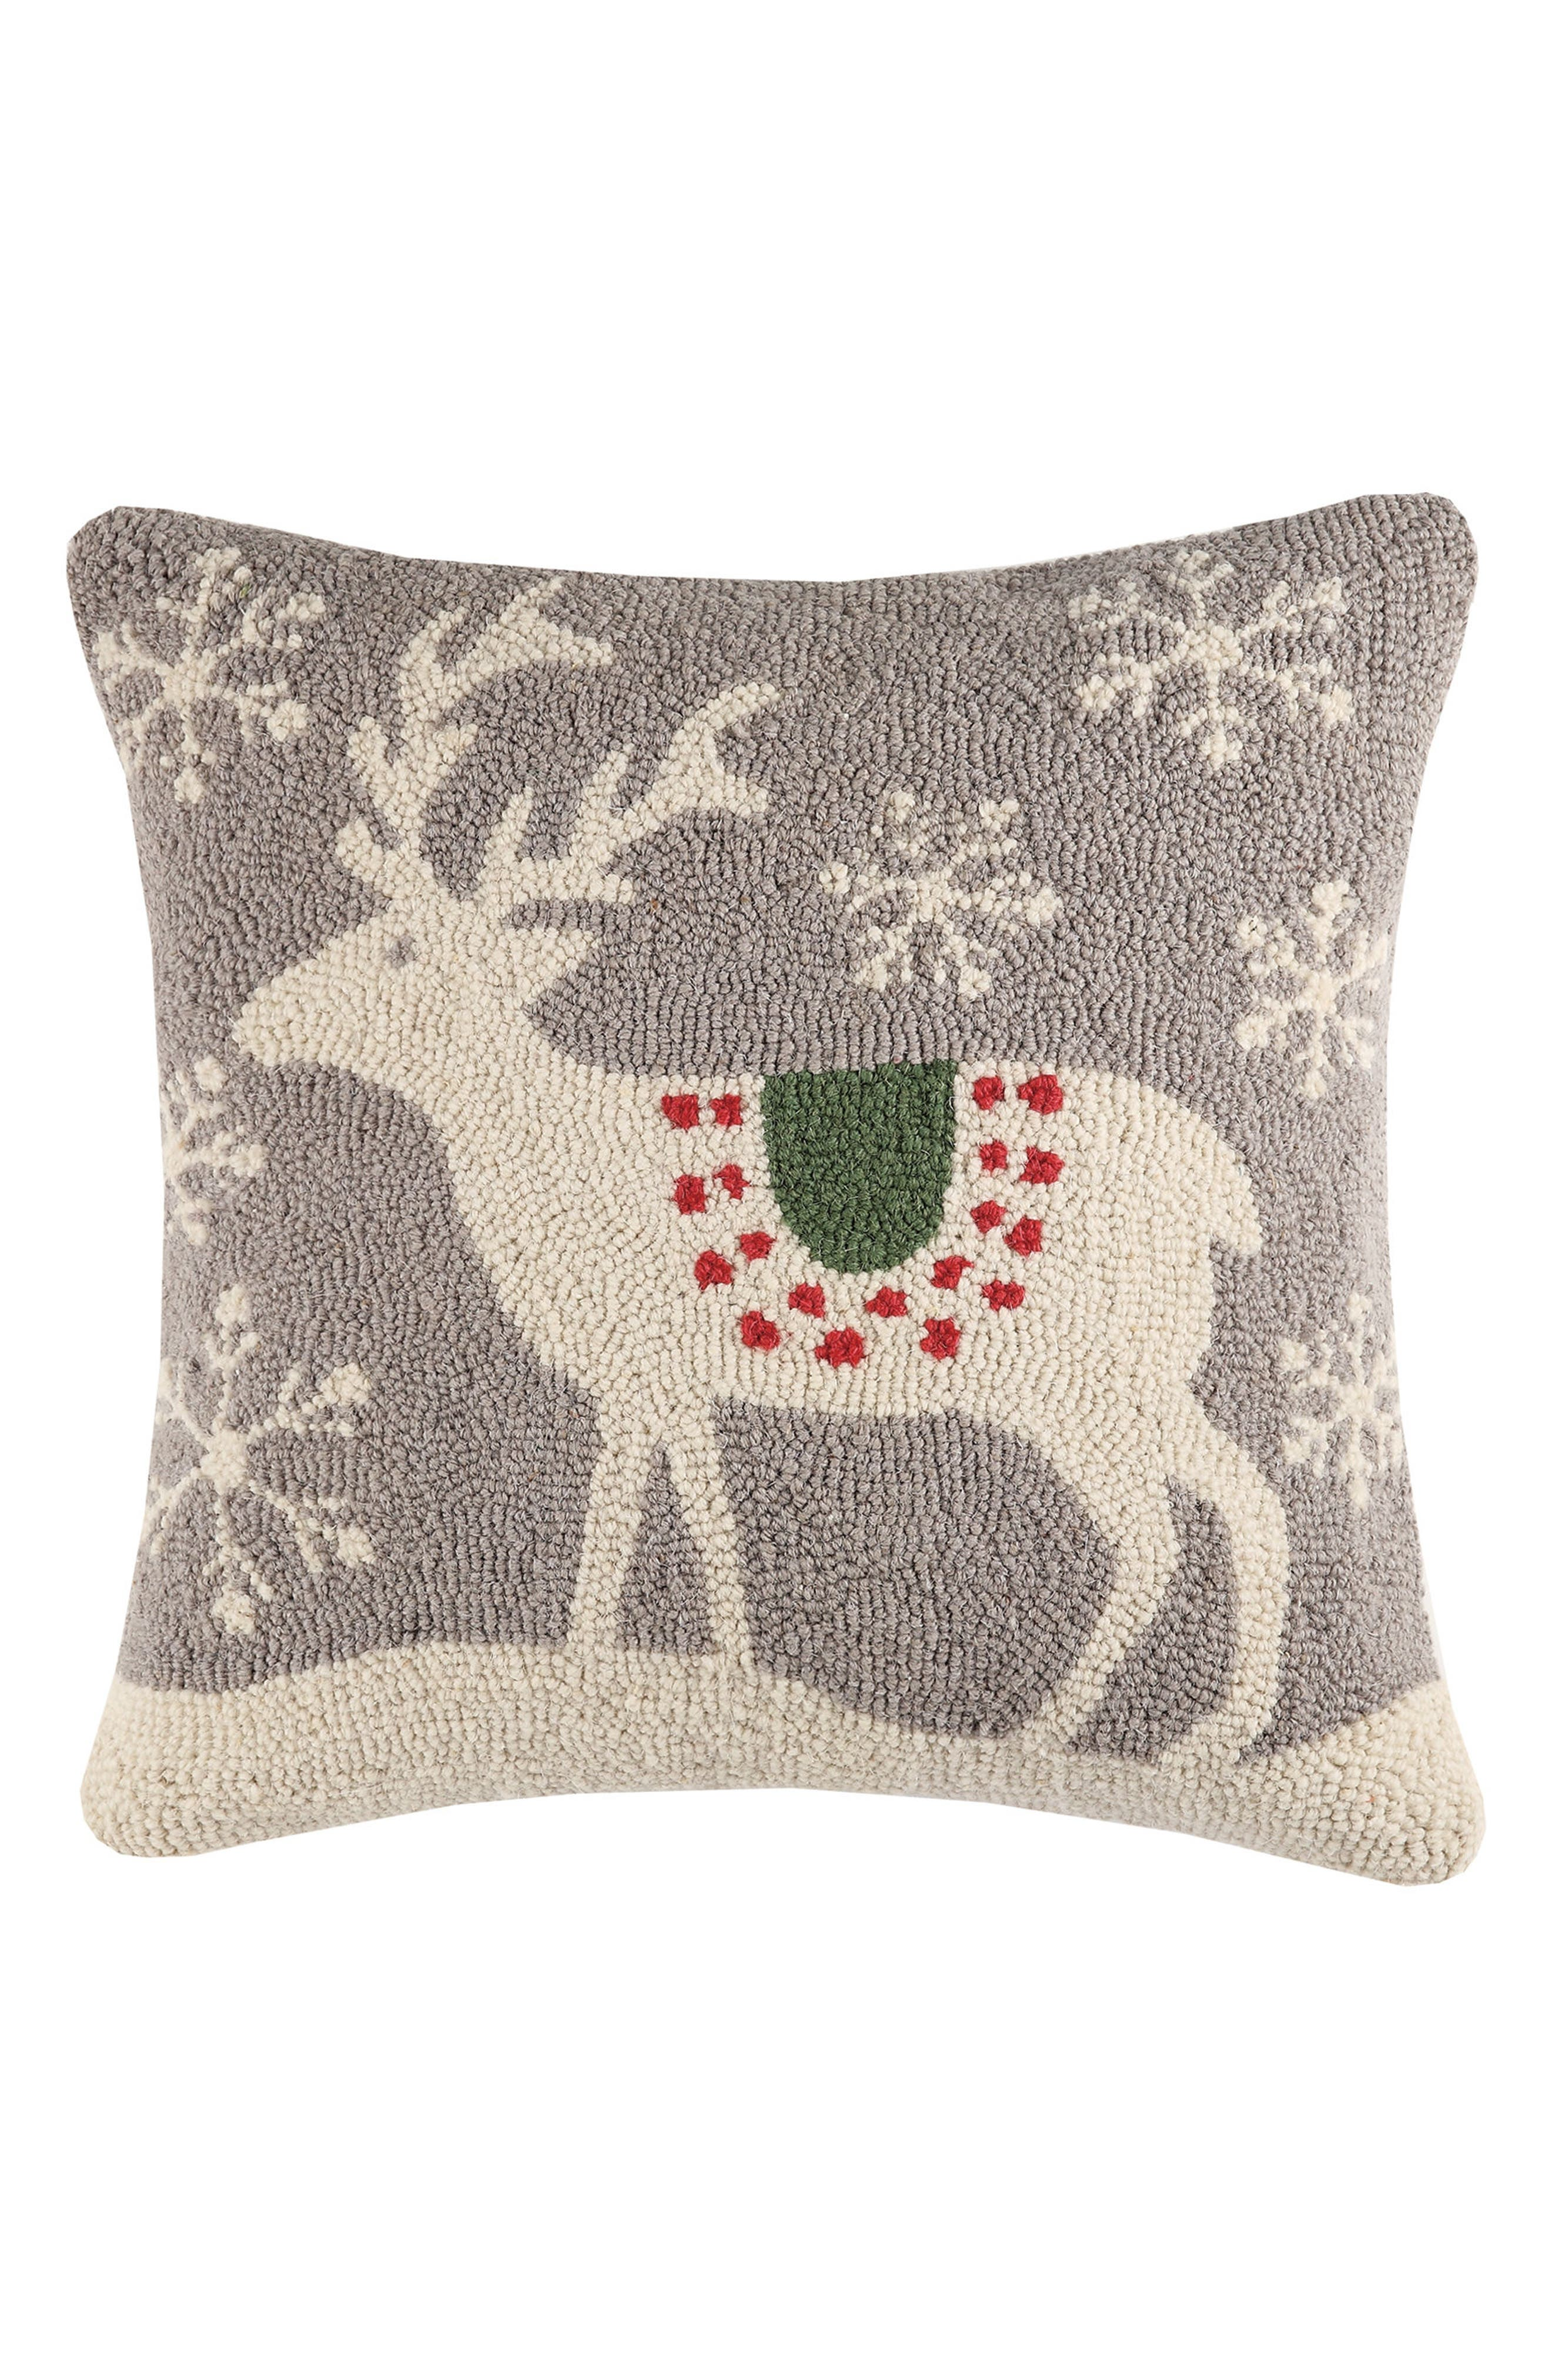 Main Image - Peking Handicraft Scandinavian Reindeer Hooked Accent Pillow